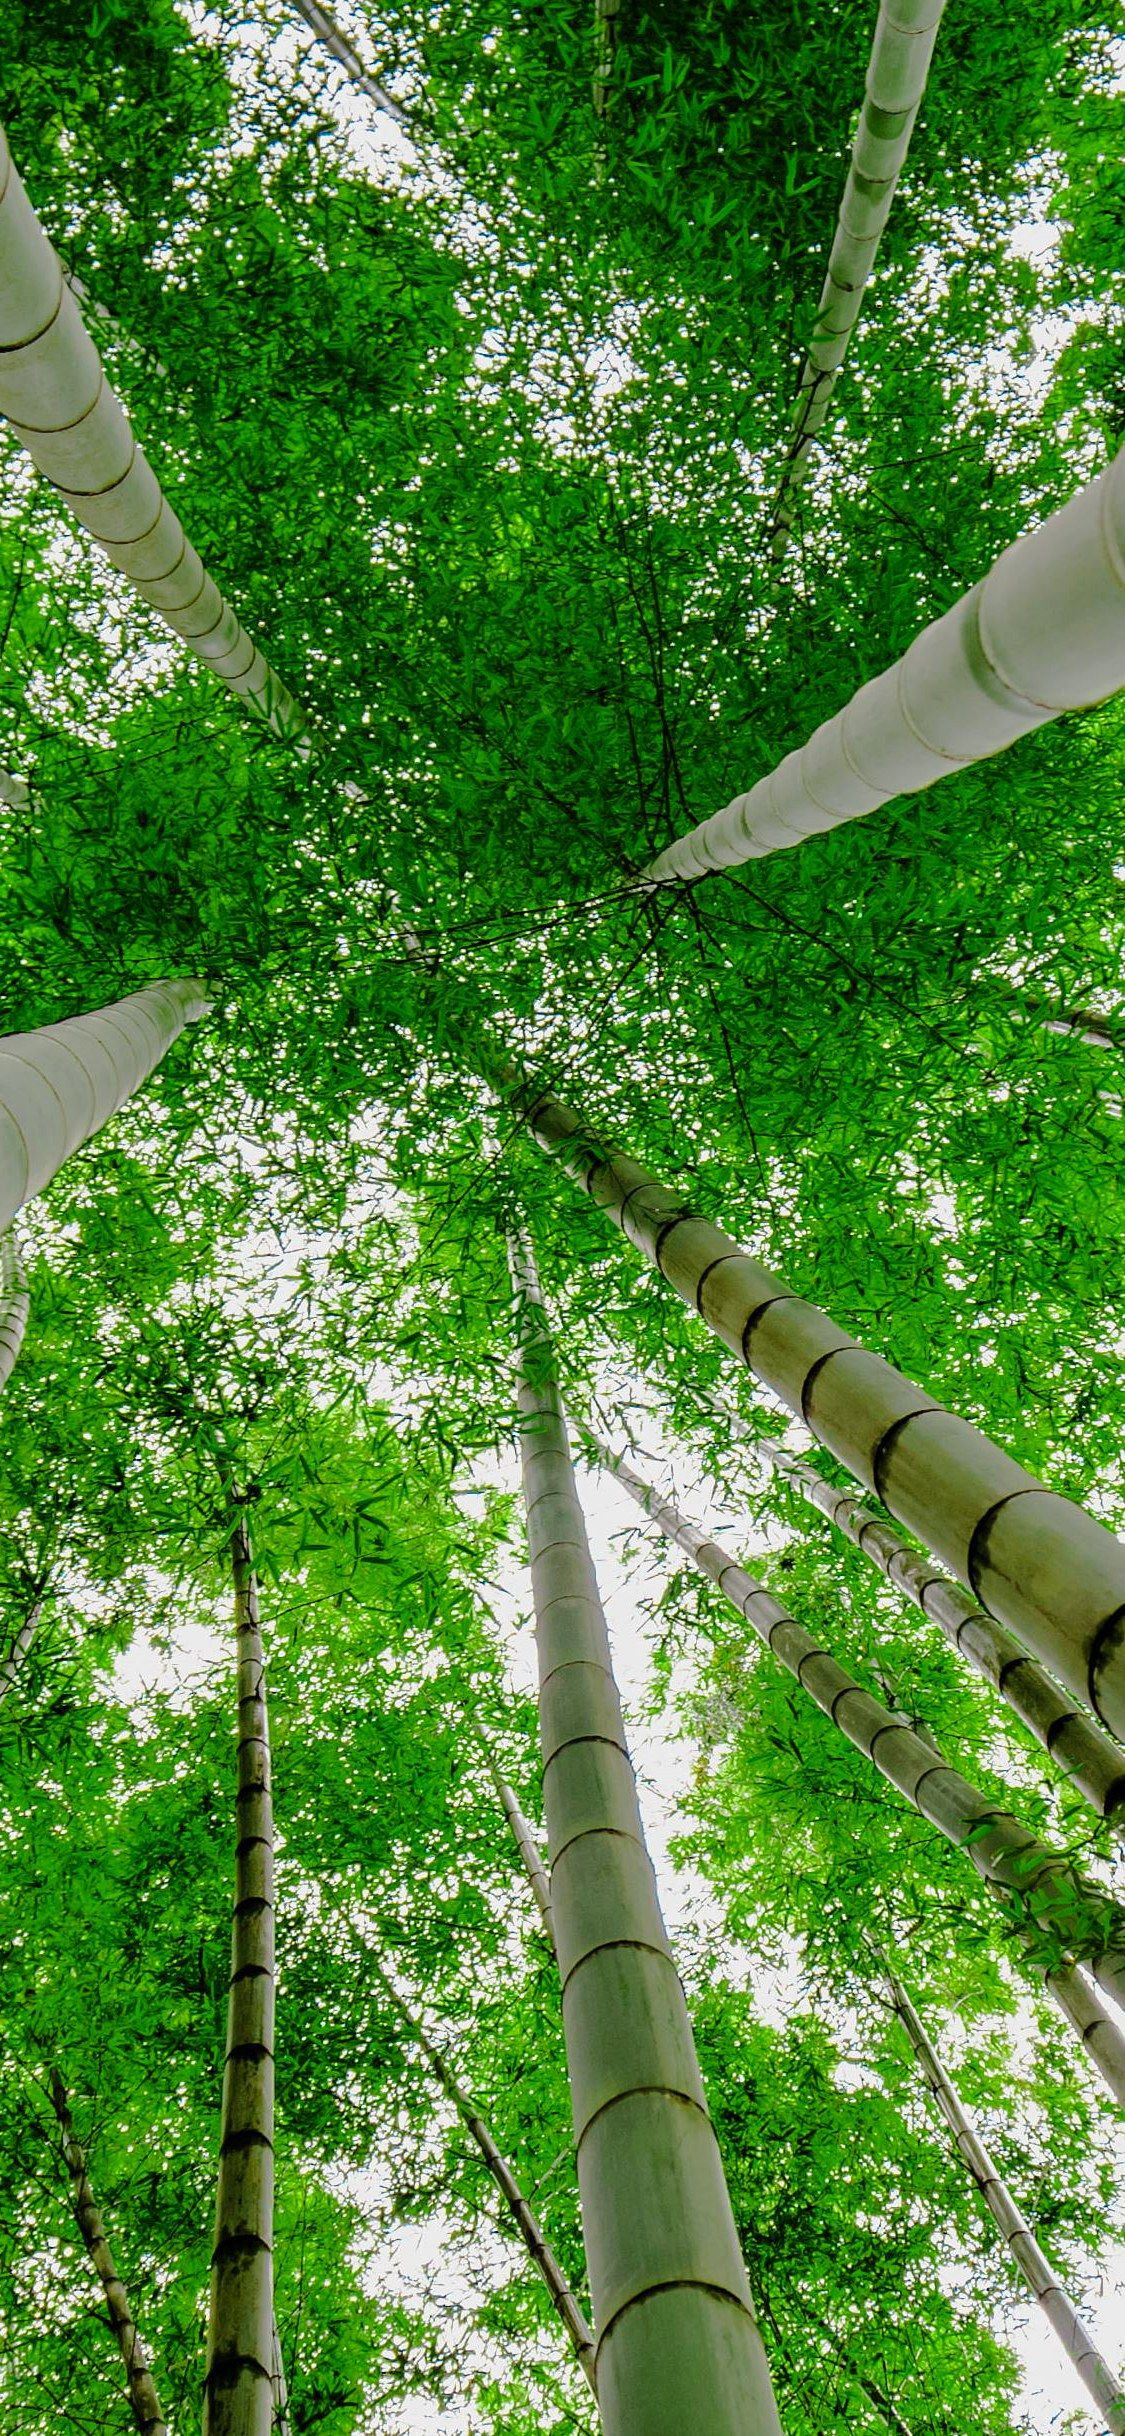 Looking Up Forest Green Green Bamboo Trees Wallpaper Iphone X